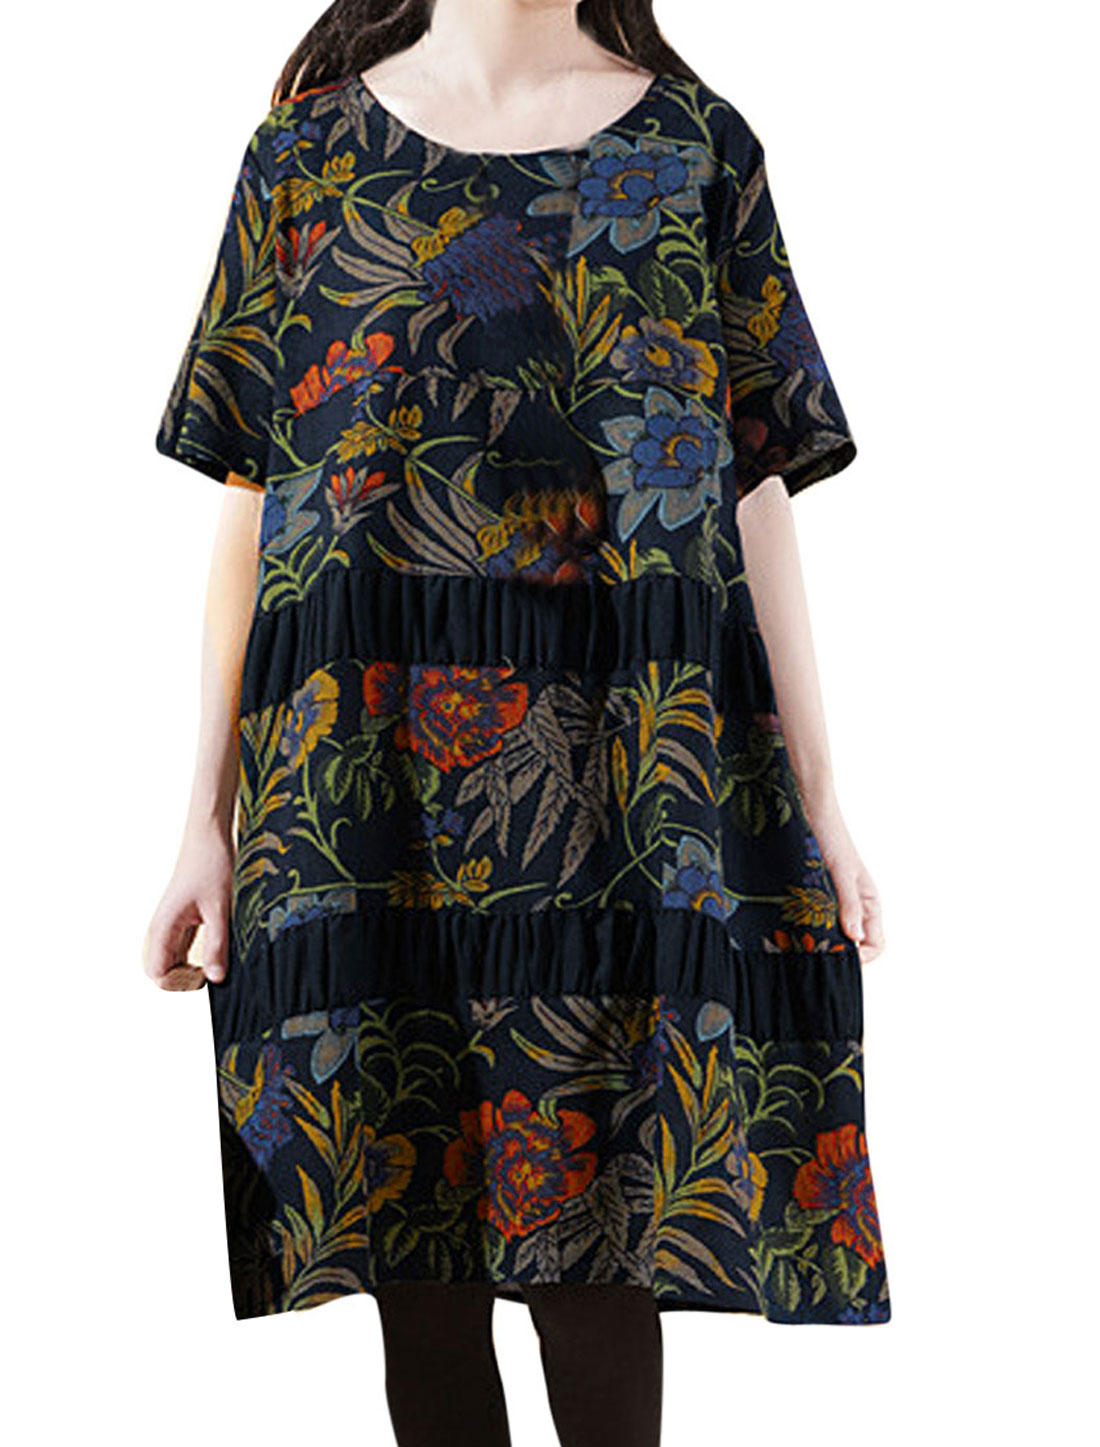 Lady Short Sleeve Floral Prints Double Side Pockets Peasant Dress Navy Blue M